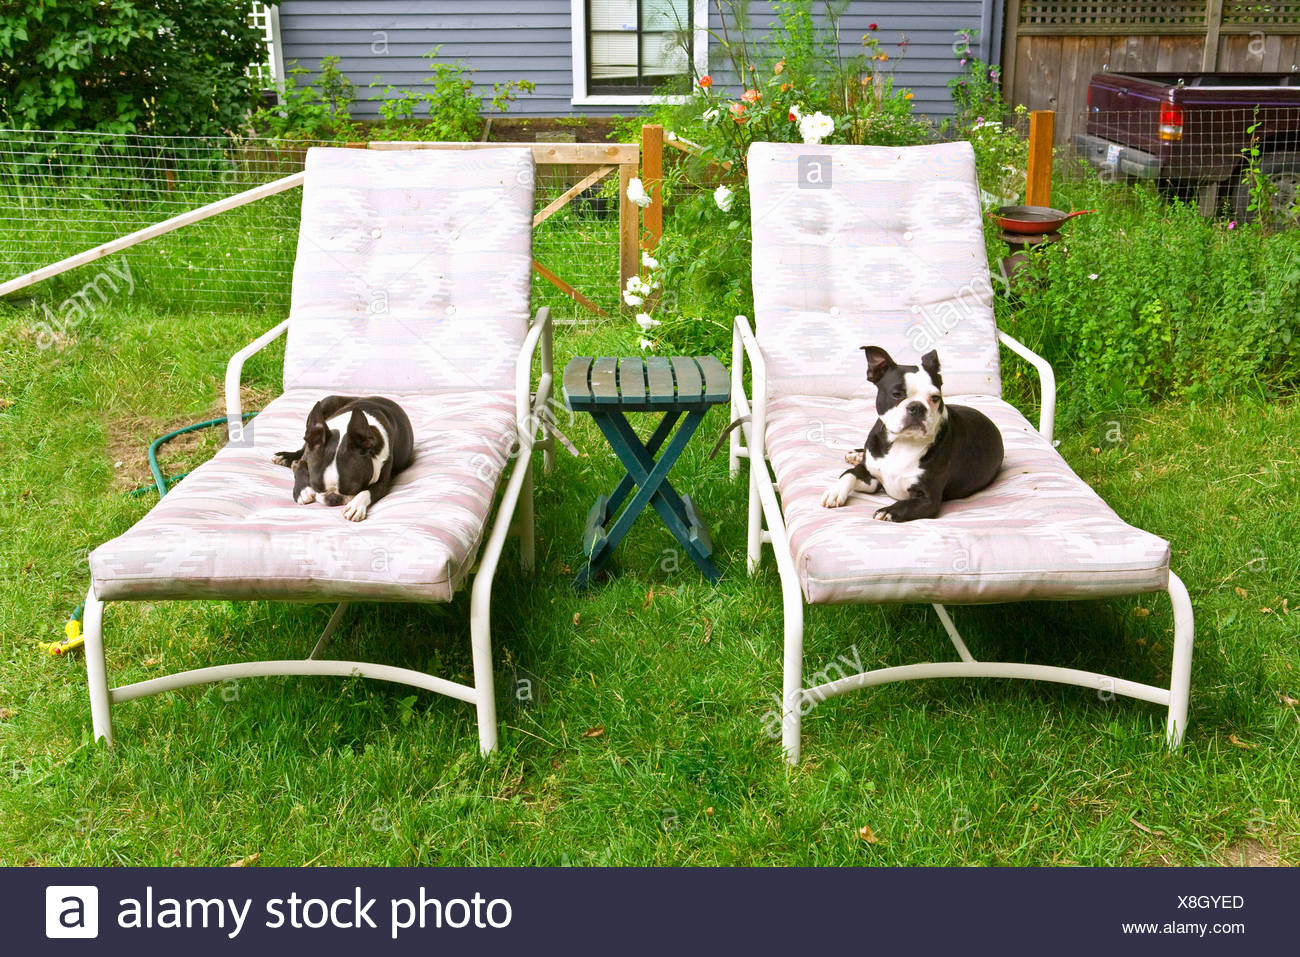 Super Dogs Sitting On Lounge Chairs Stock Photo 280655941 Alamy Interior Design Ideas Tzicisoteloinfo